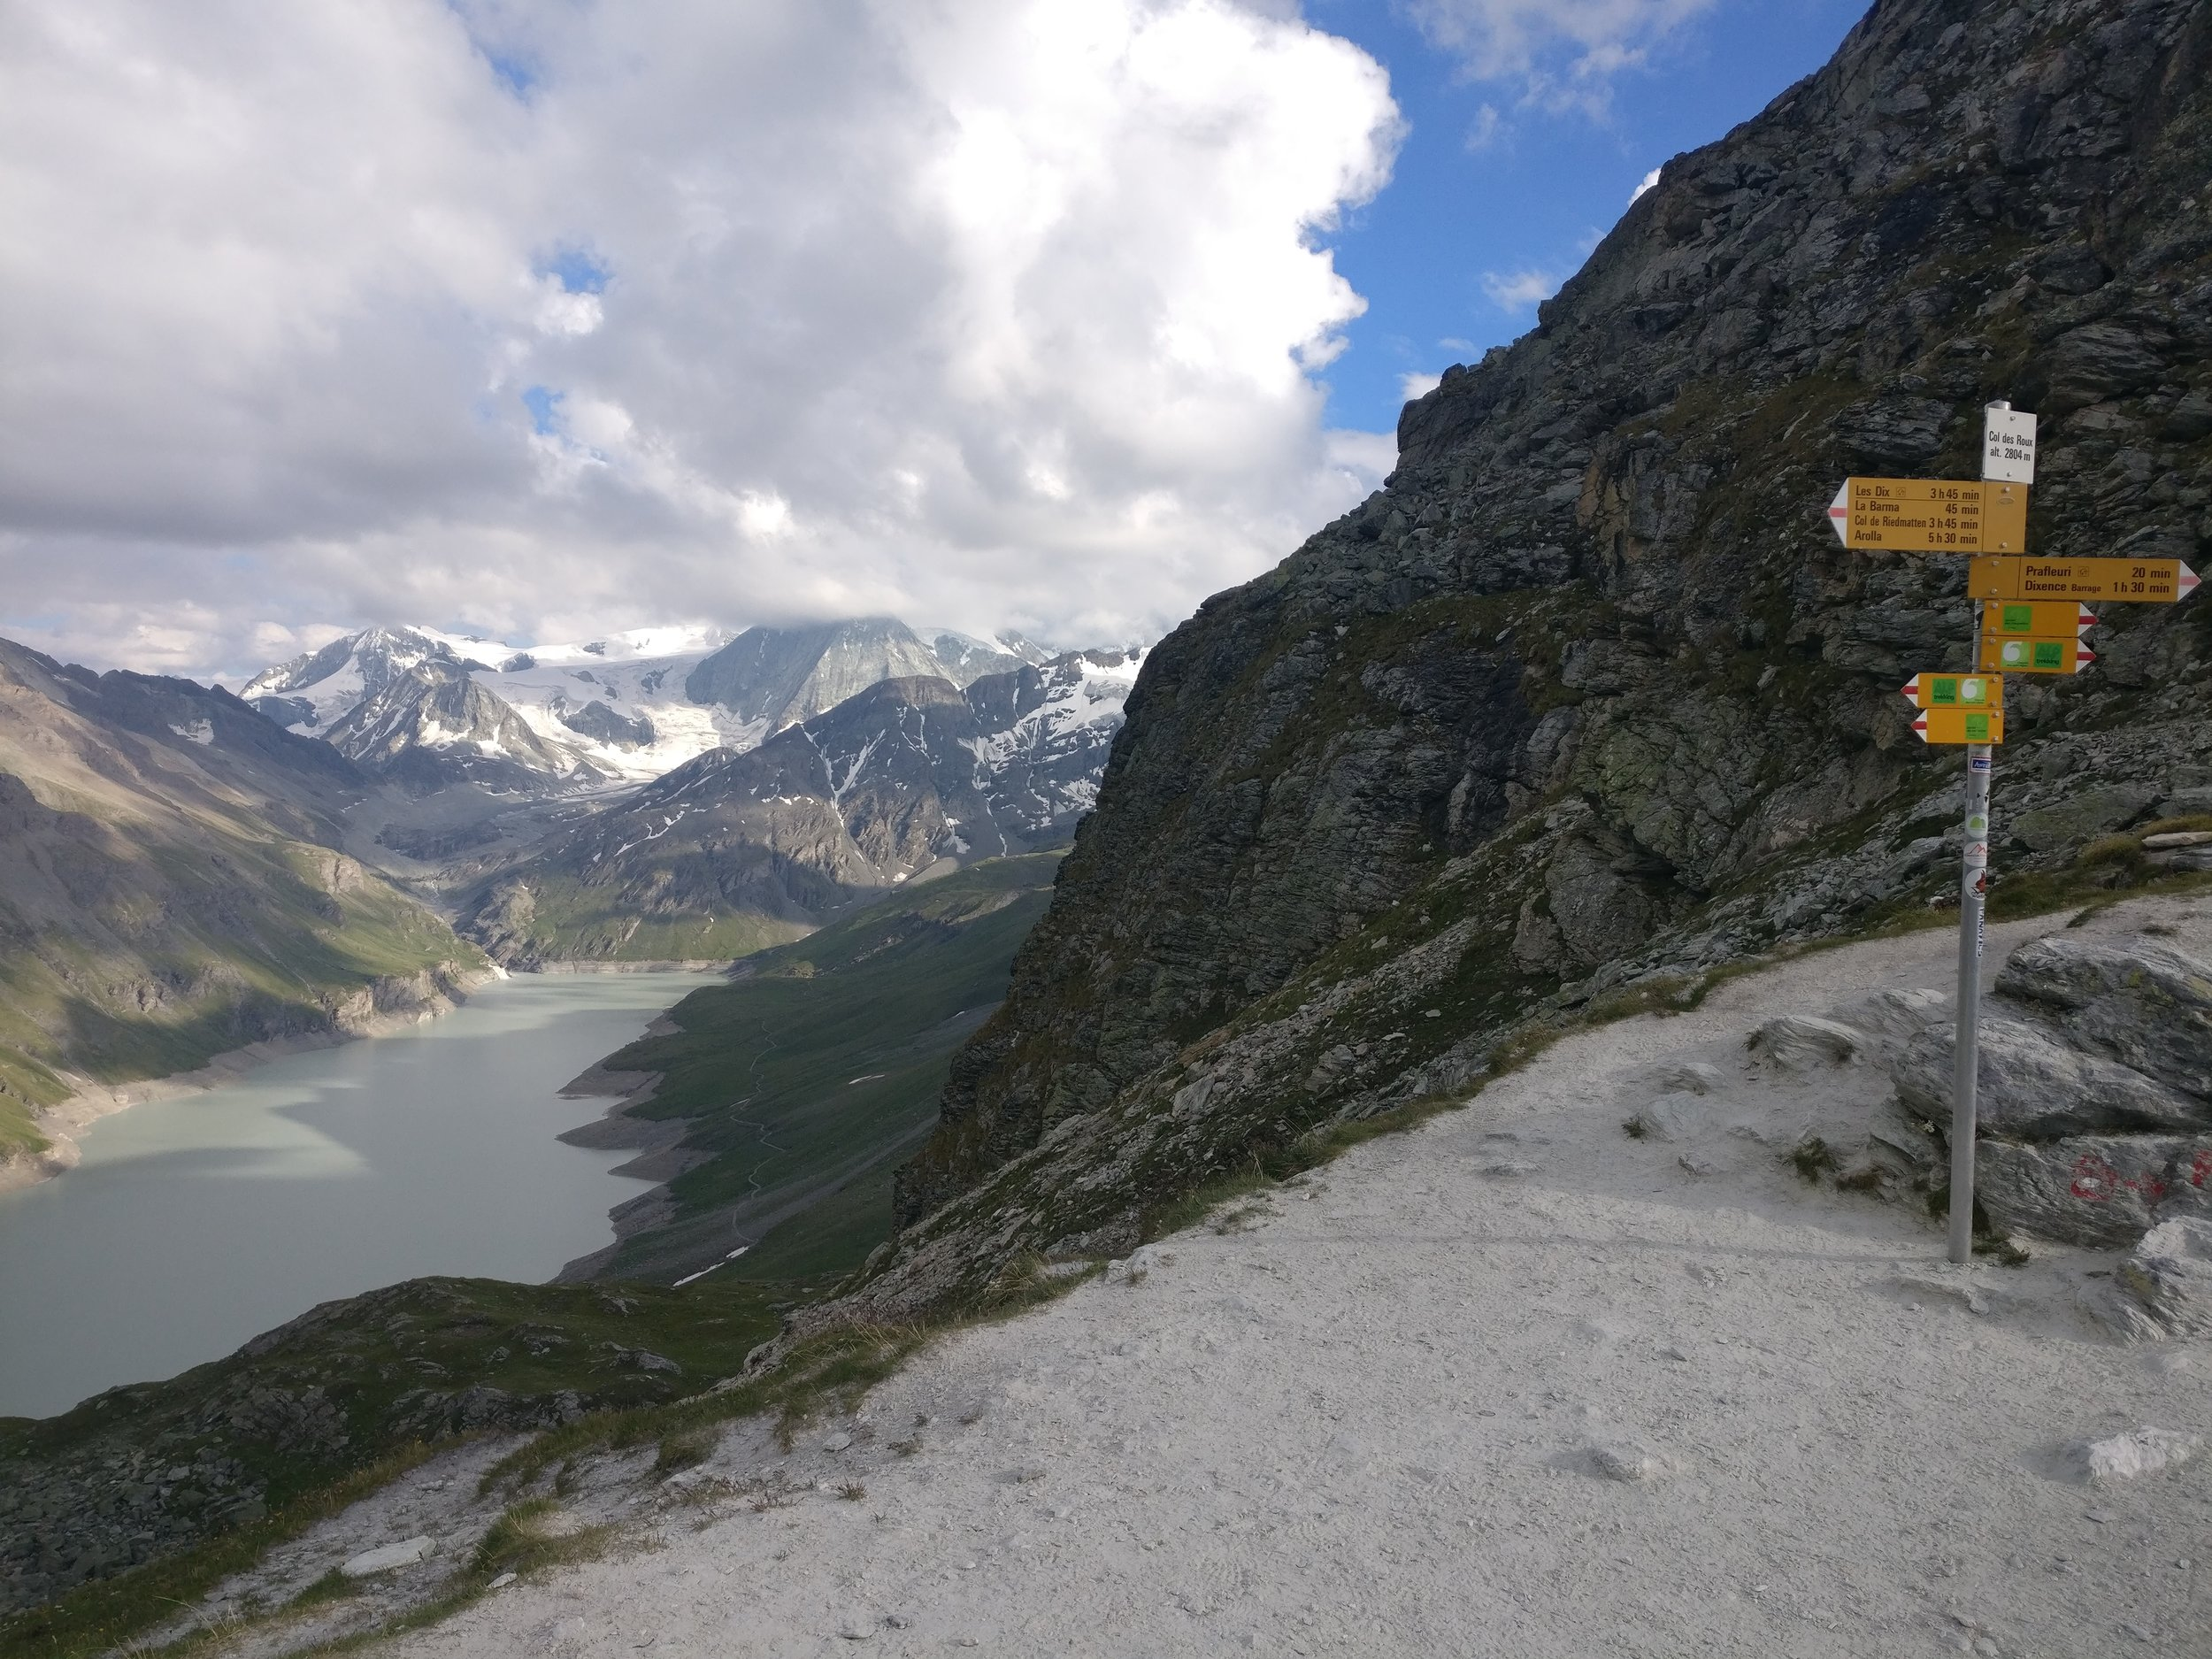 Standing at Col Des Roux looking down at the trail beside Lac Des Dix you follow before ascending at the far end.